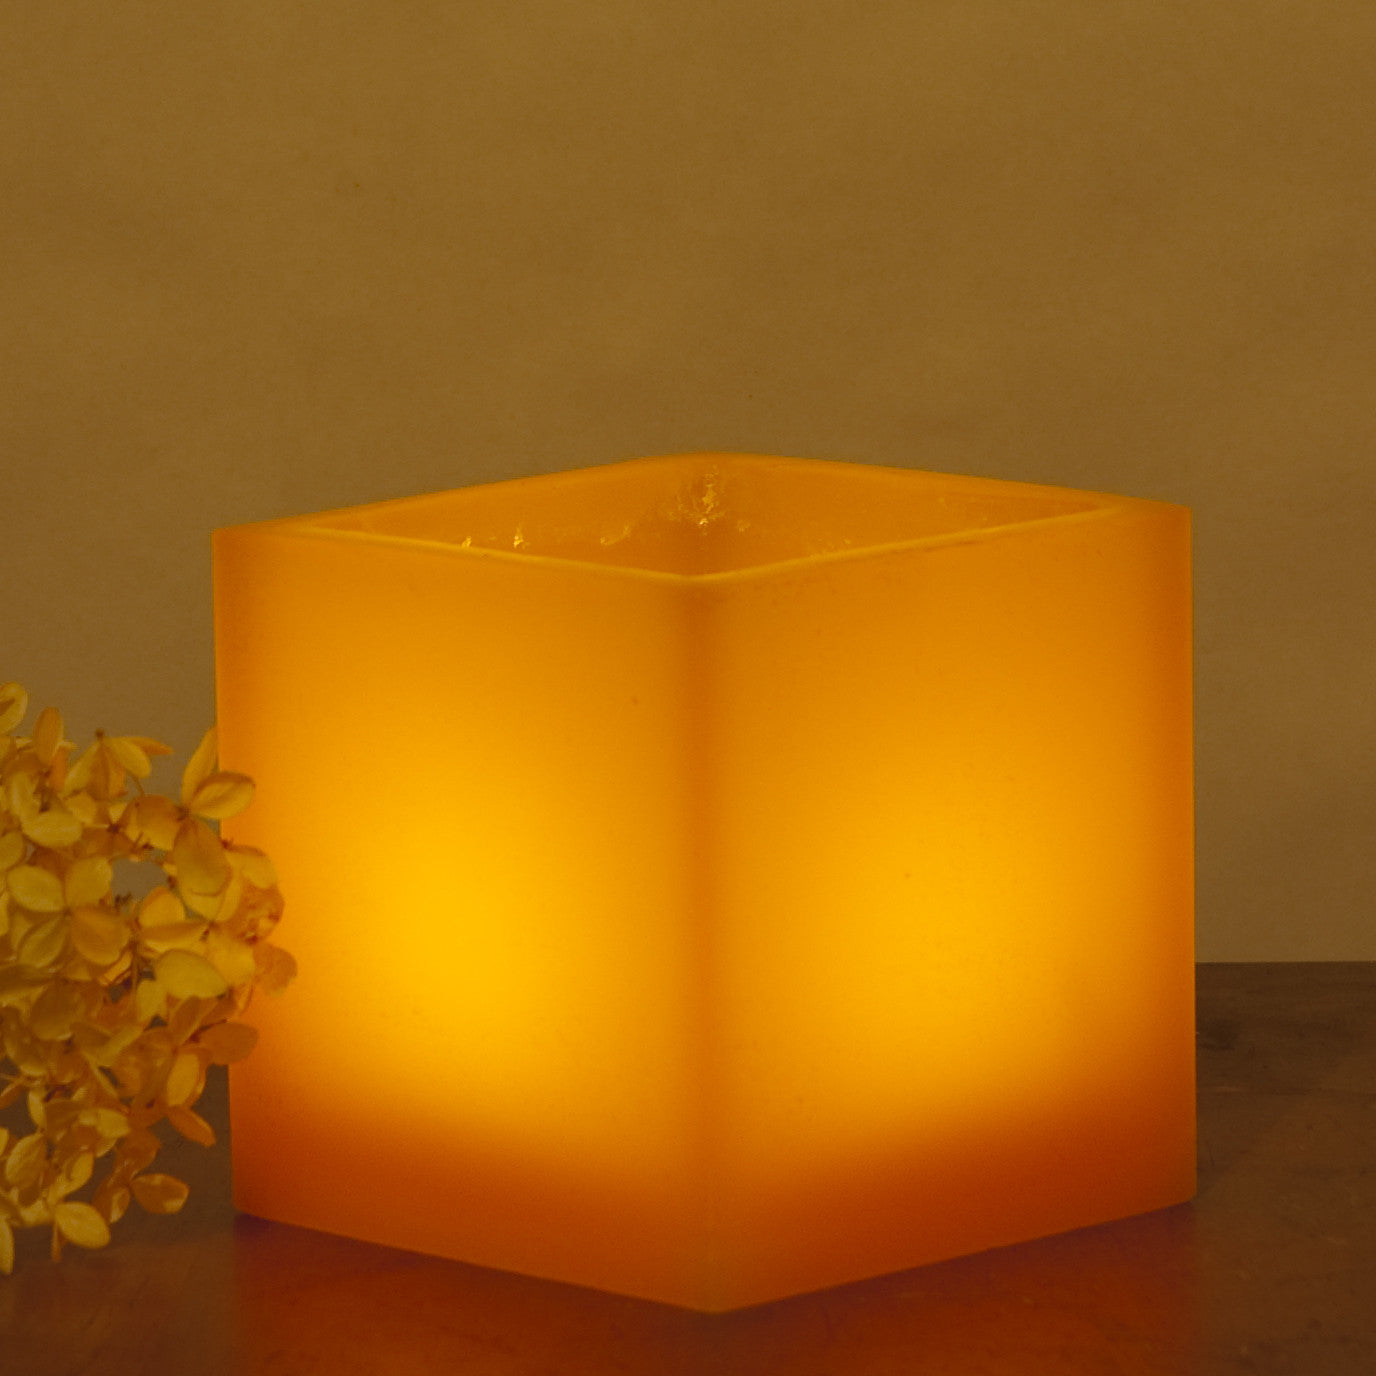 orange lantern made of wax lit with a votive or tea light size is 4 x 4 inches Nordic Candle